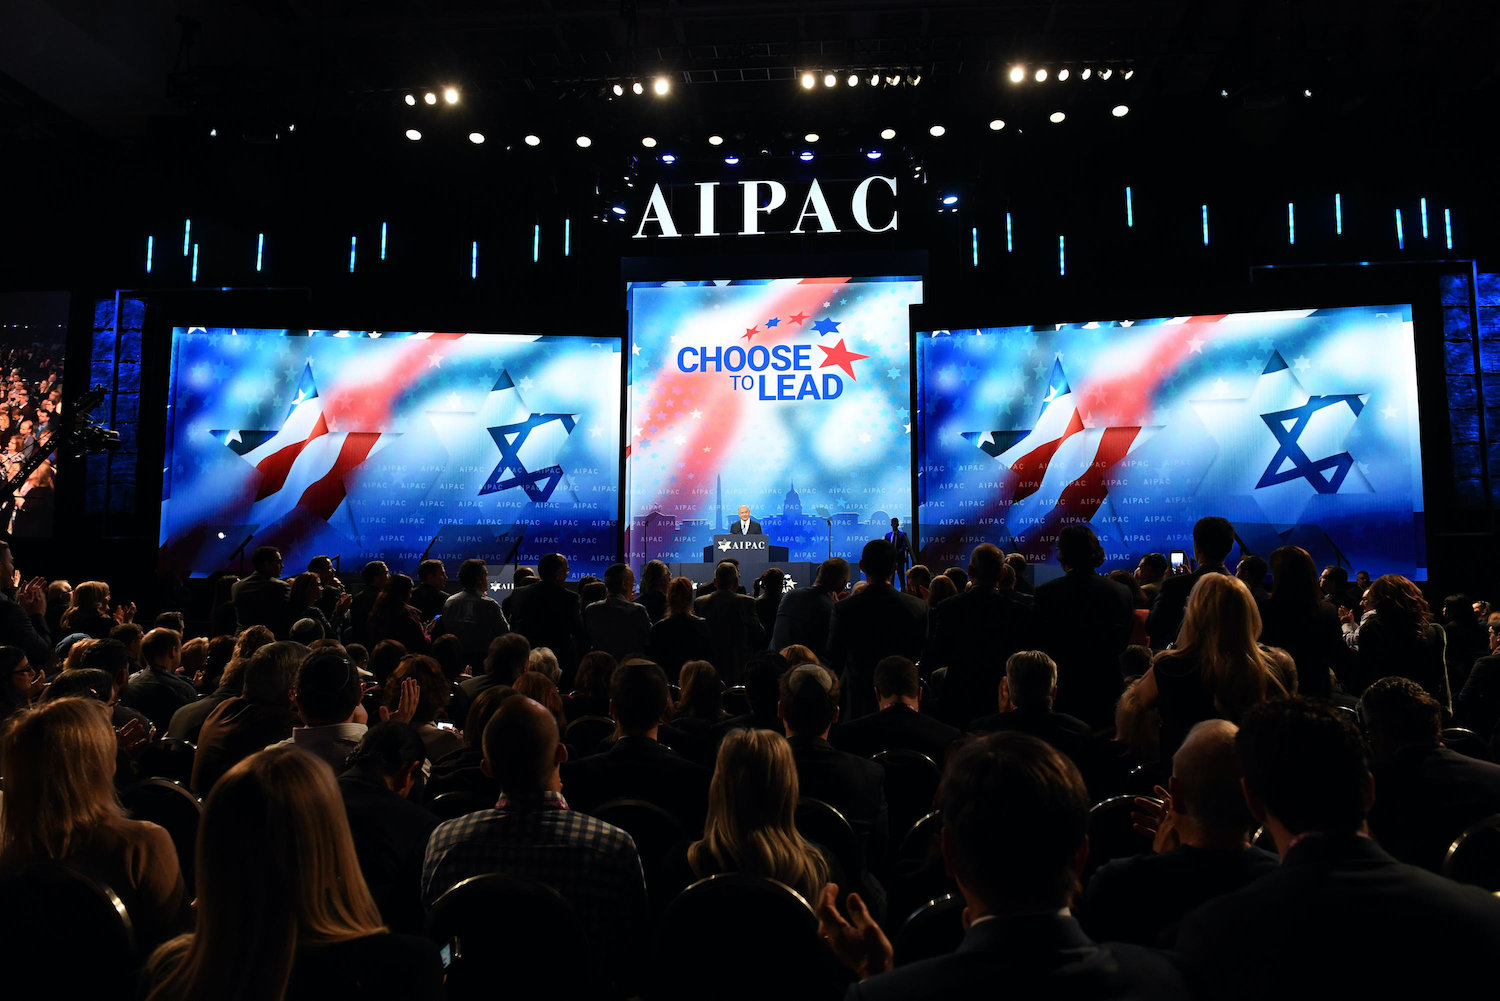 Israeli Prime Minister Benjamin Netanyahu speaks at the AIPAC Conference in Washington, D.C. on March 6, 2018 (Haim Zach/GPO)